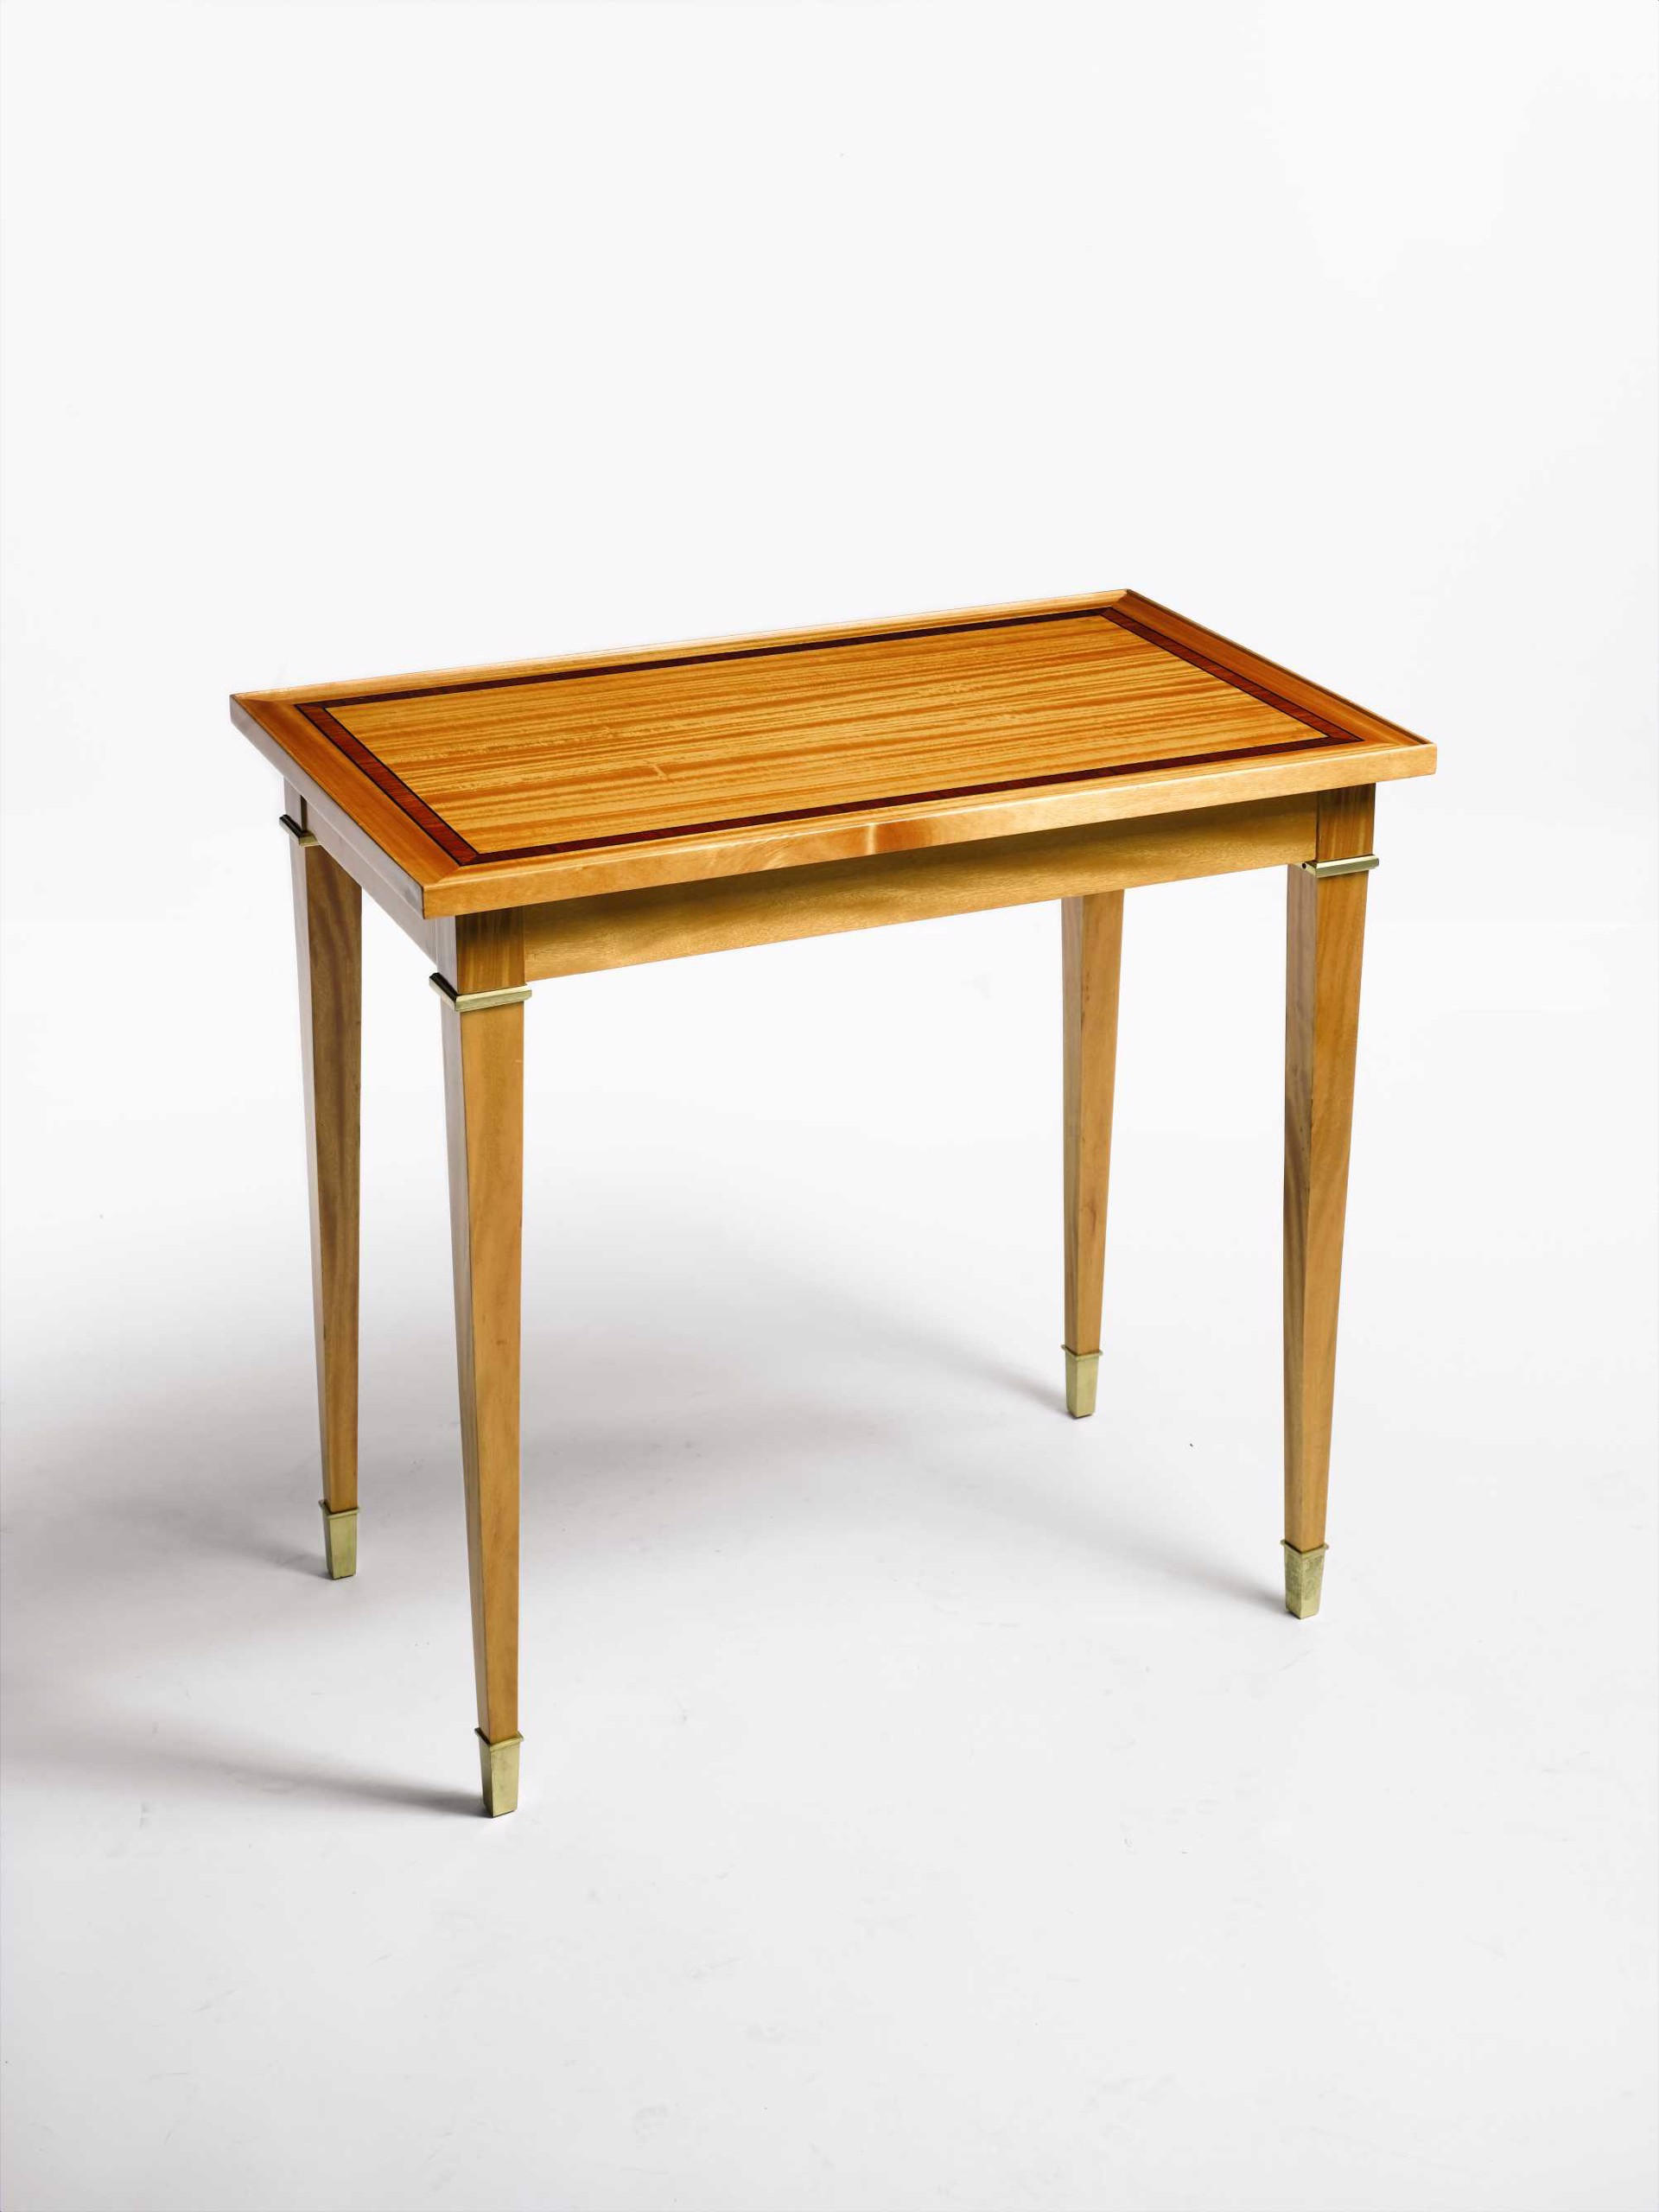 FRENCH DIRECTOIRE STYLE SMALL SATINWOOD SIDE TABLE